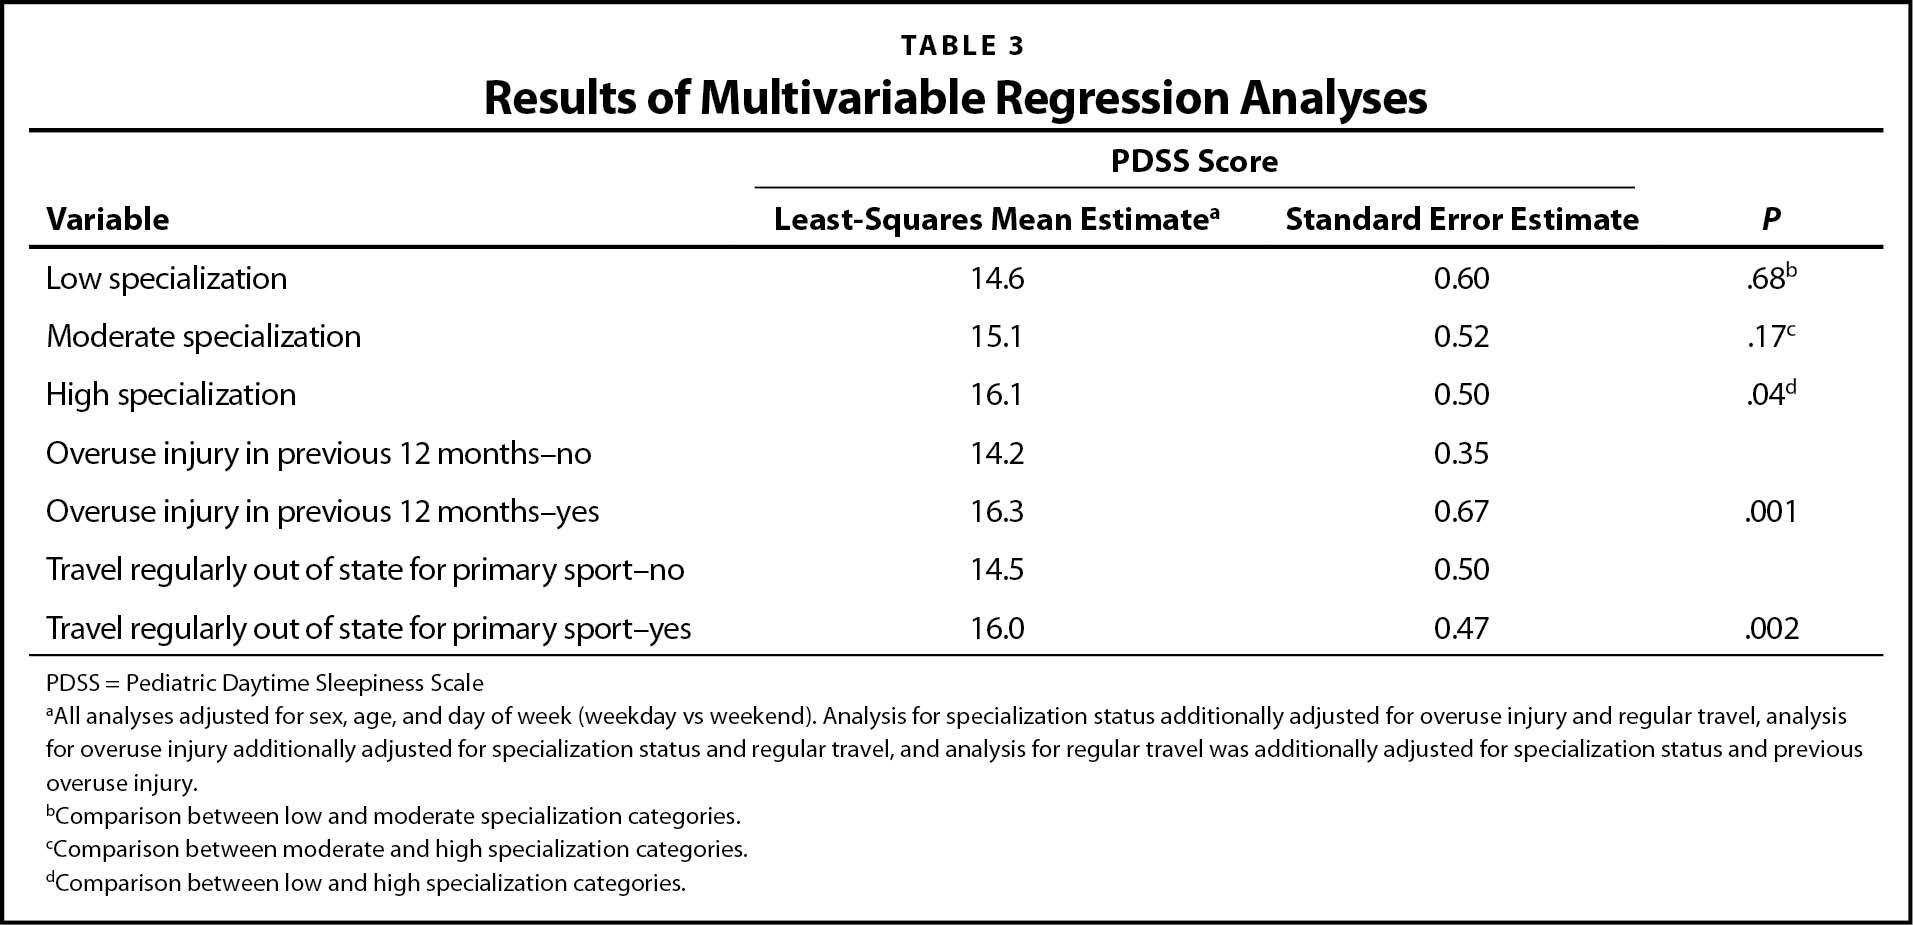 Results of Multivariable Regression Analyses